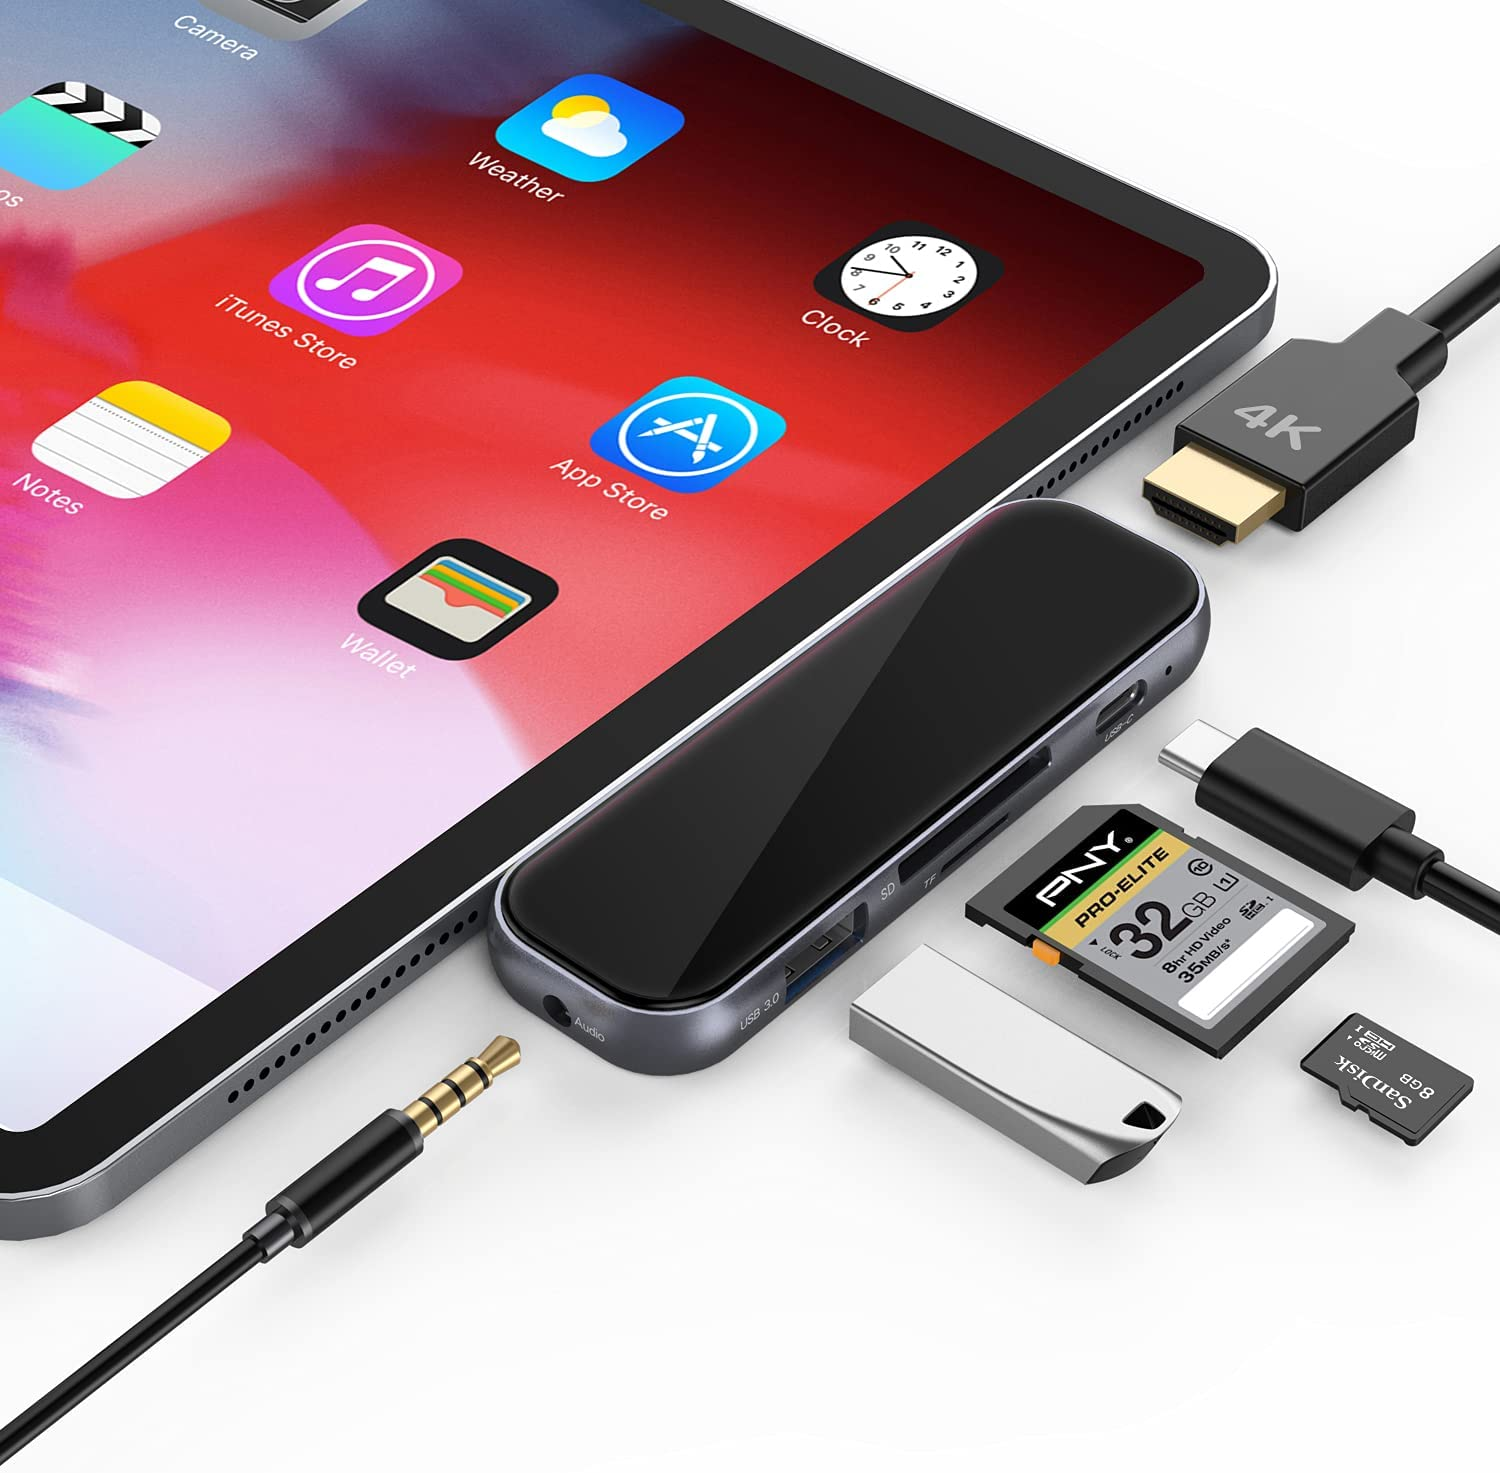 USB C Hub for iPad Pro - 7 in 1 Portable 2.5D Tempered Glass Multiport Adapter with 4K HDMI, PD Charging, SD/TF Card Reader, USB 3.0 & 3.5mm AUX Dongle for iPad Pro 2021/Mac Pro/Type C Devices